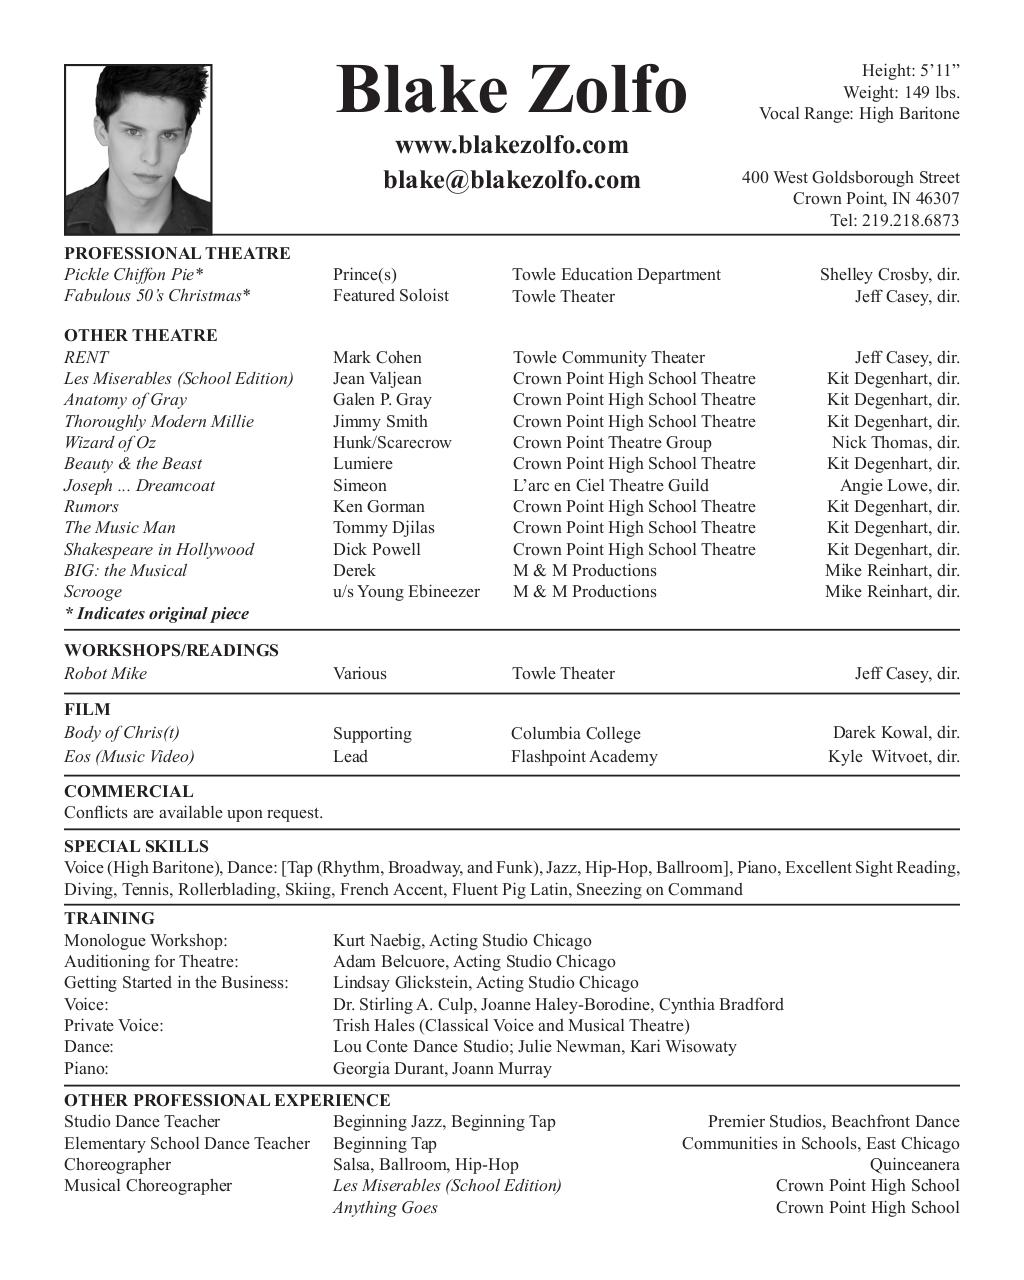 blake zolfo theatrical resume